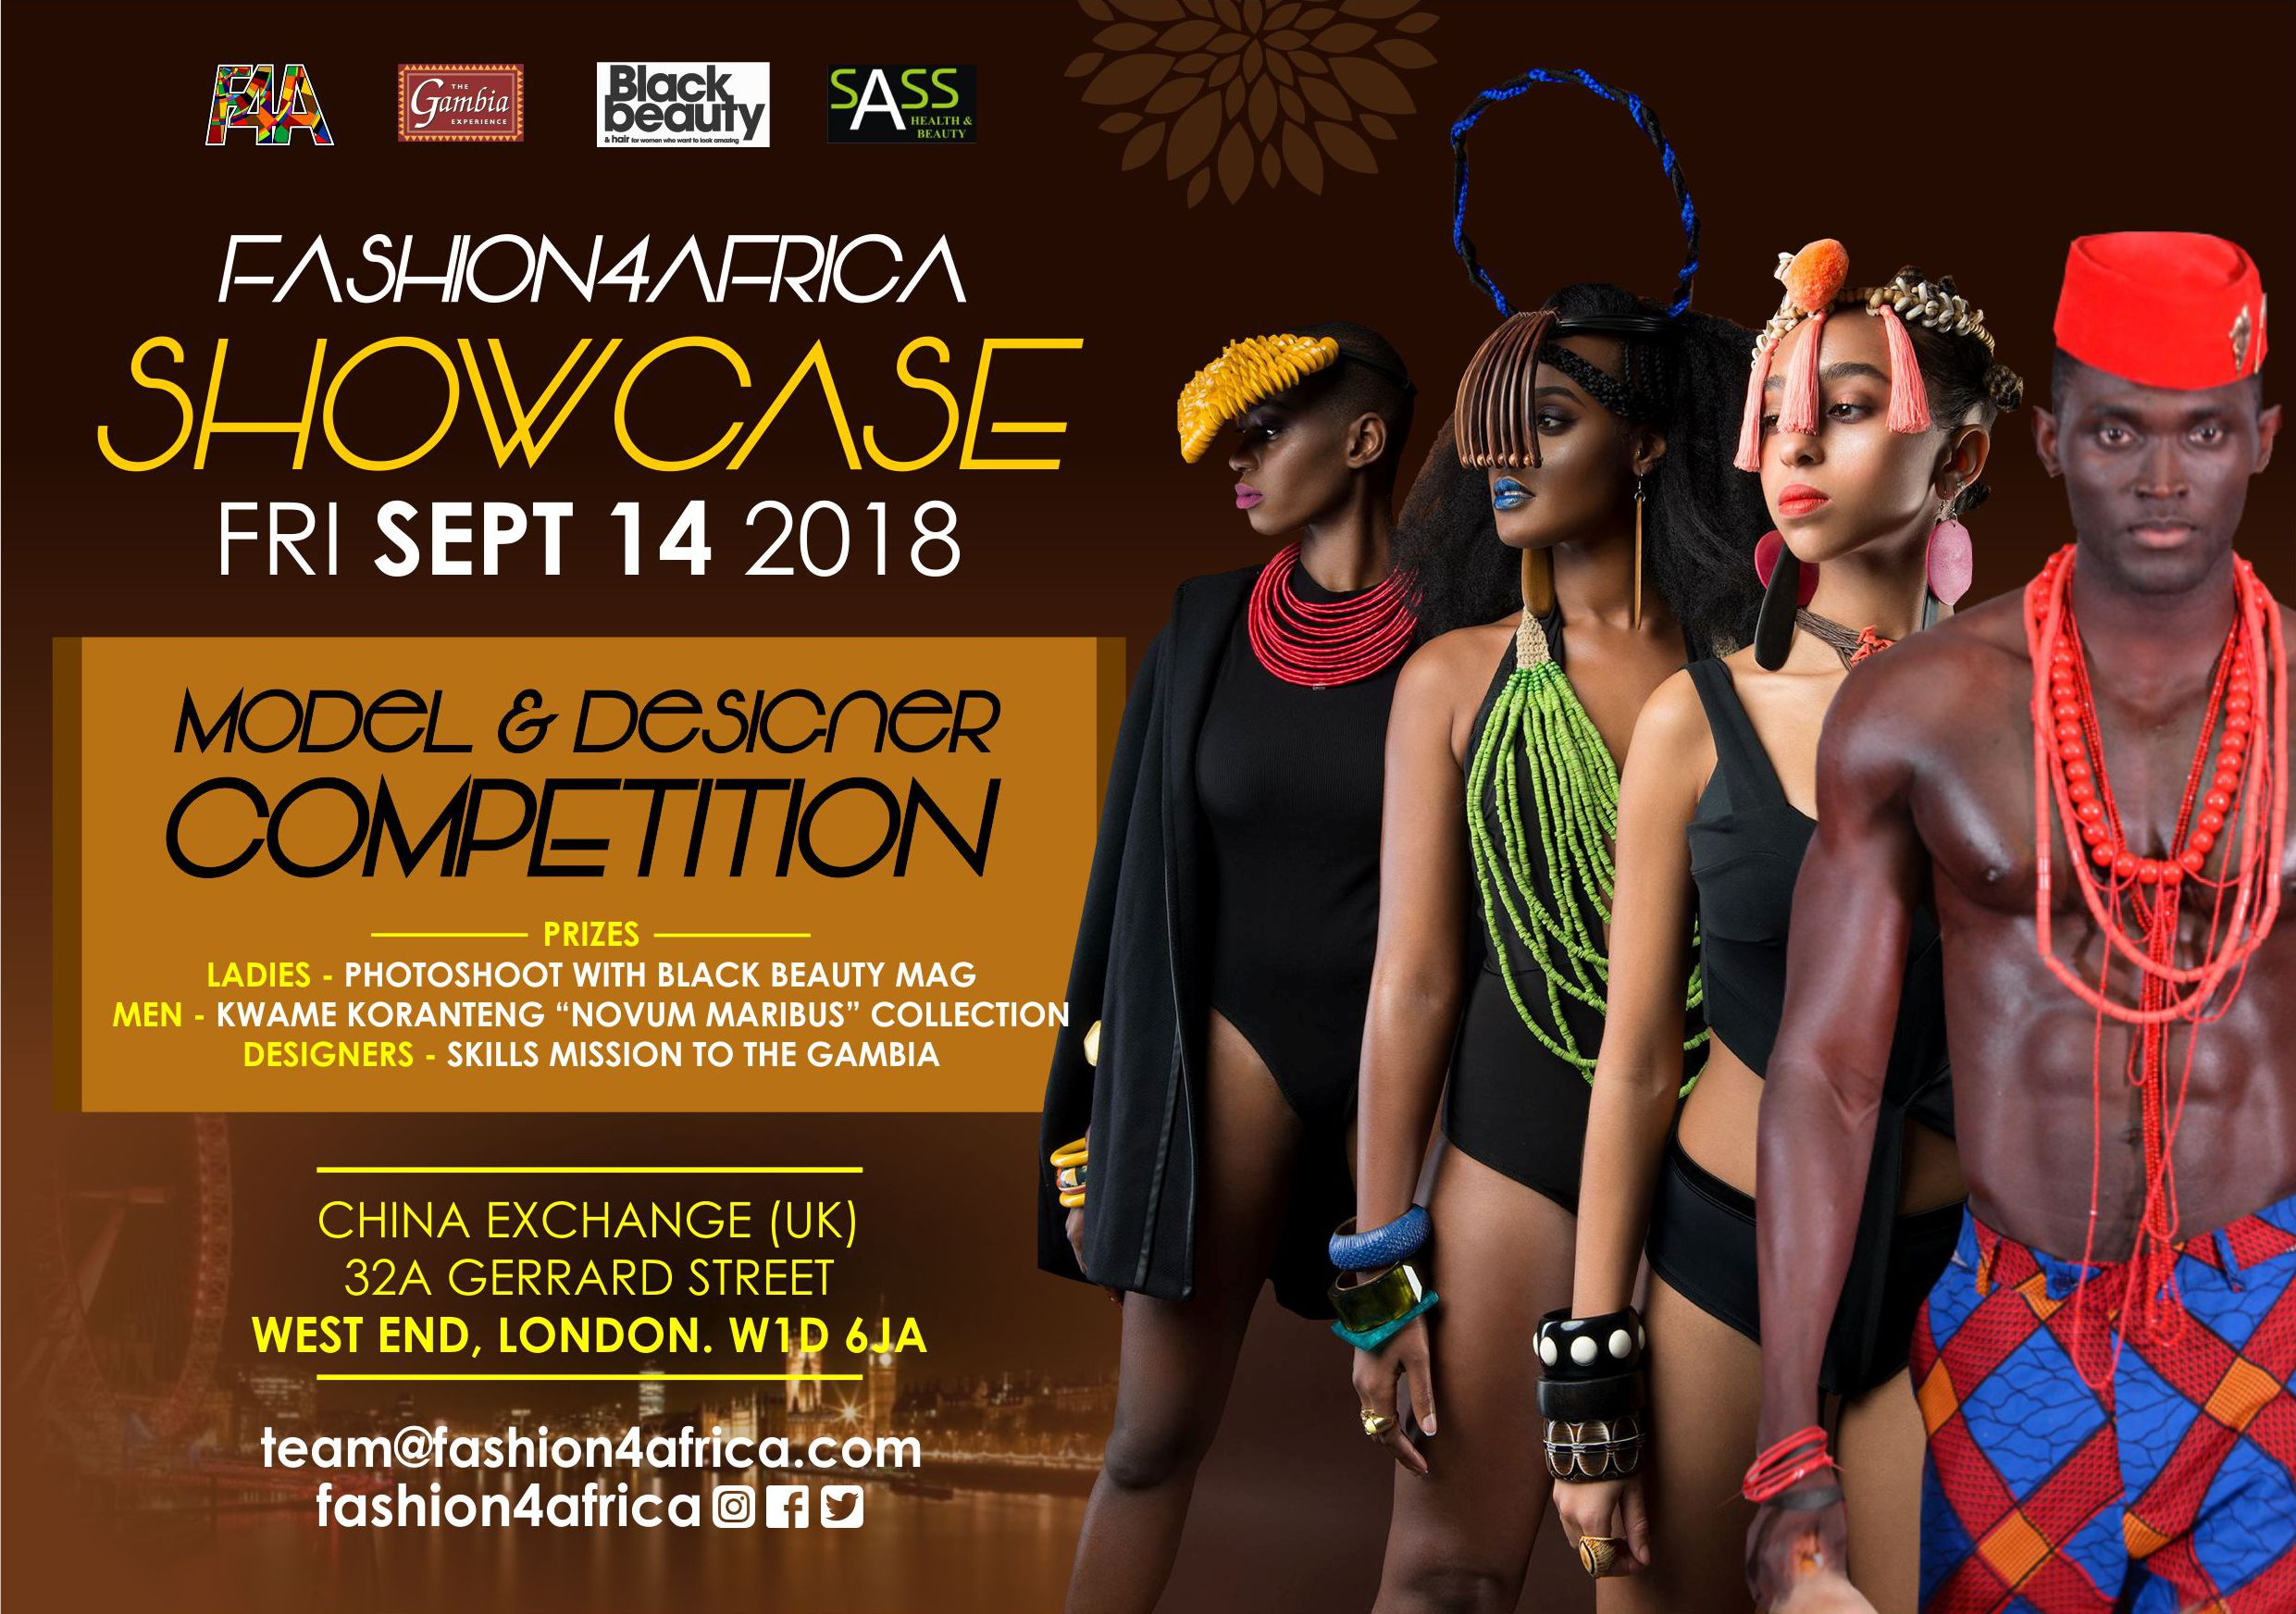 Face of Fashion4Africa flyer